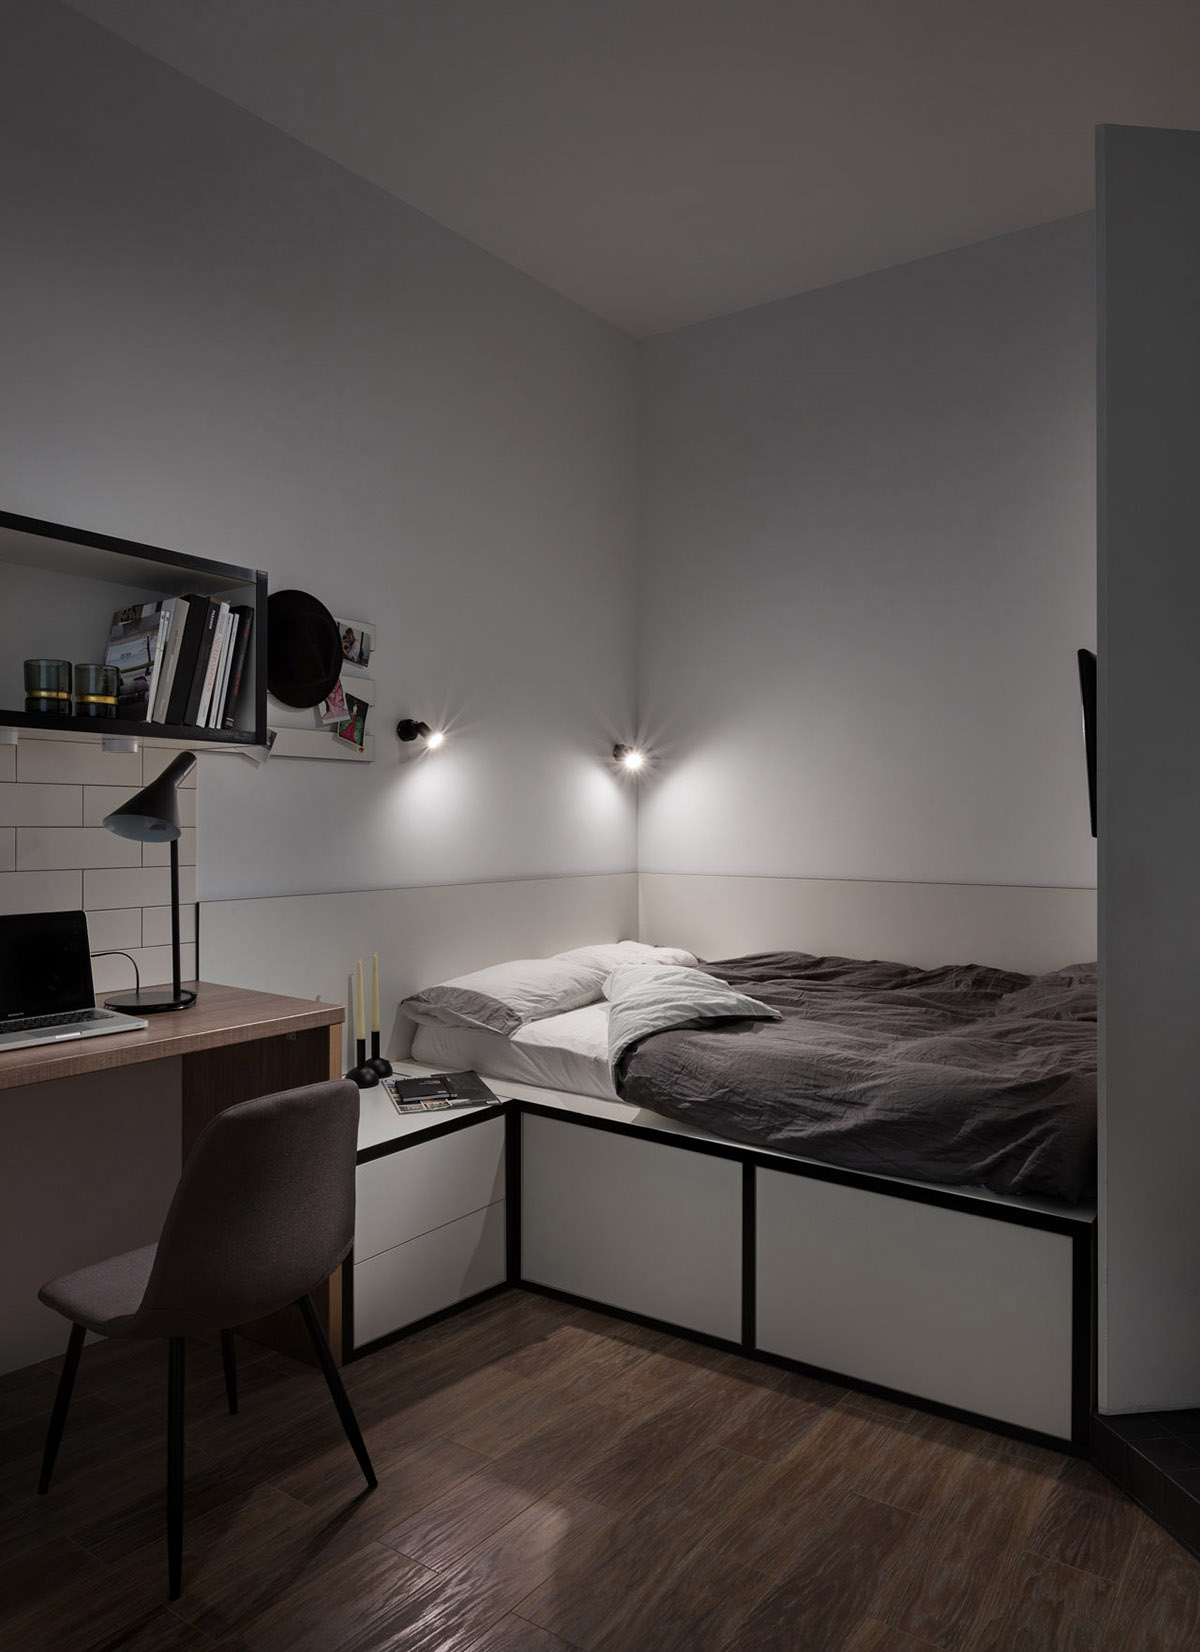 Designing A Living Space Under 18 Square Metres: Challenge Accepted images 9